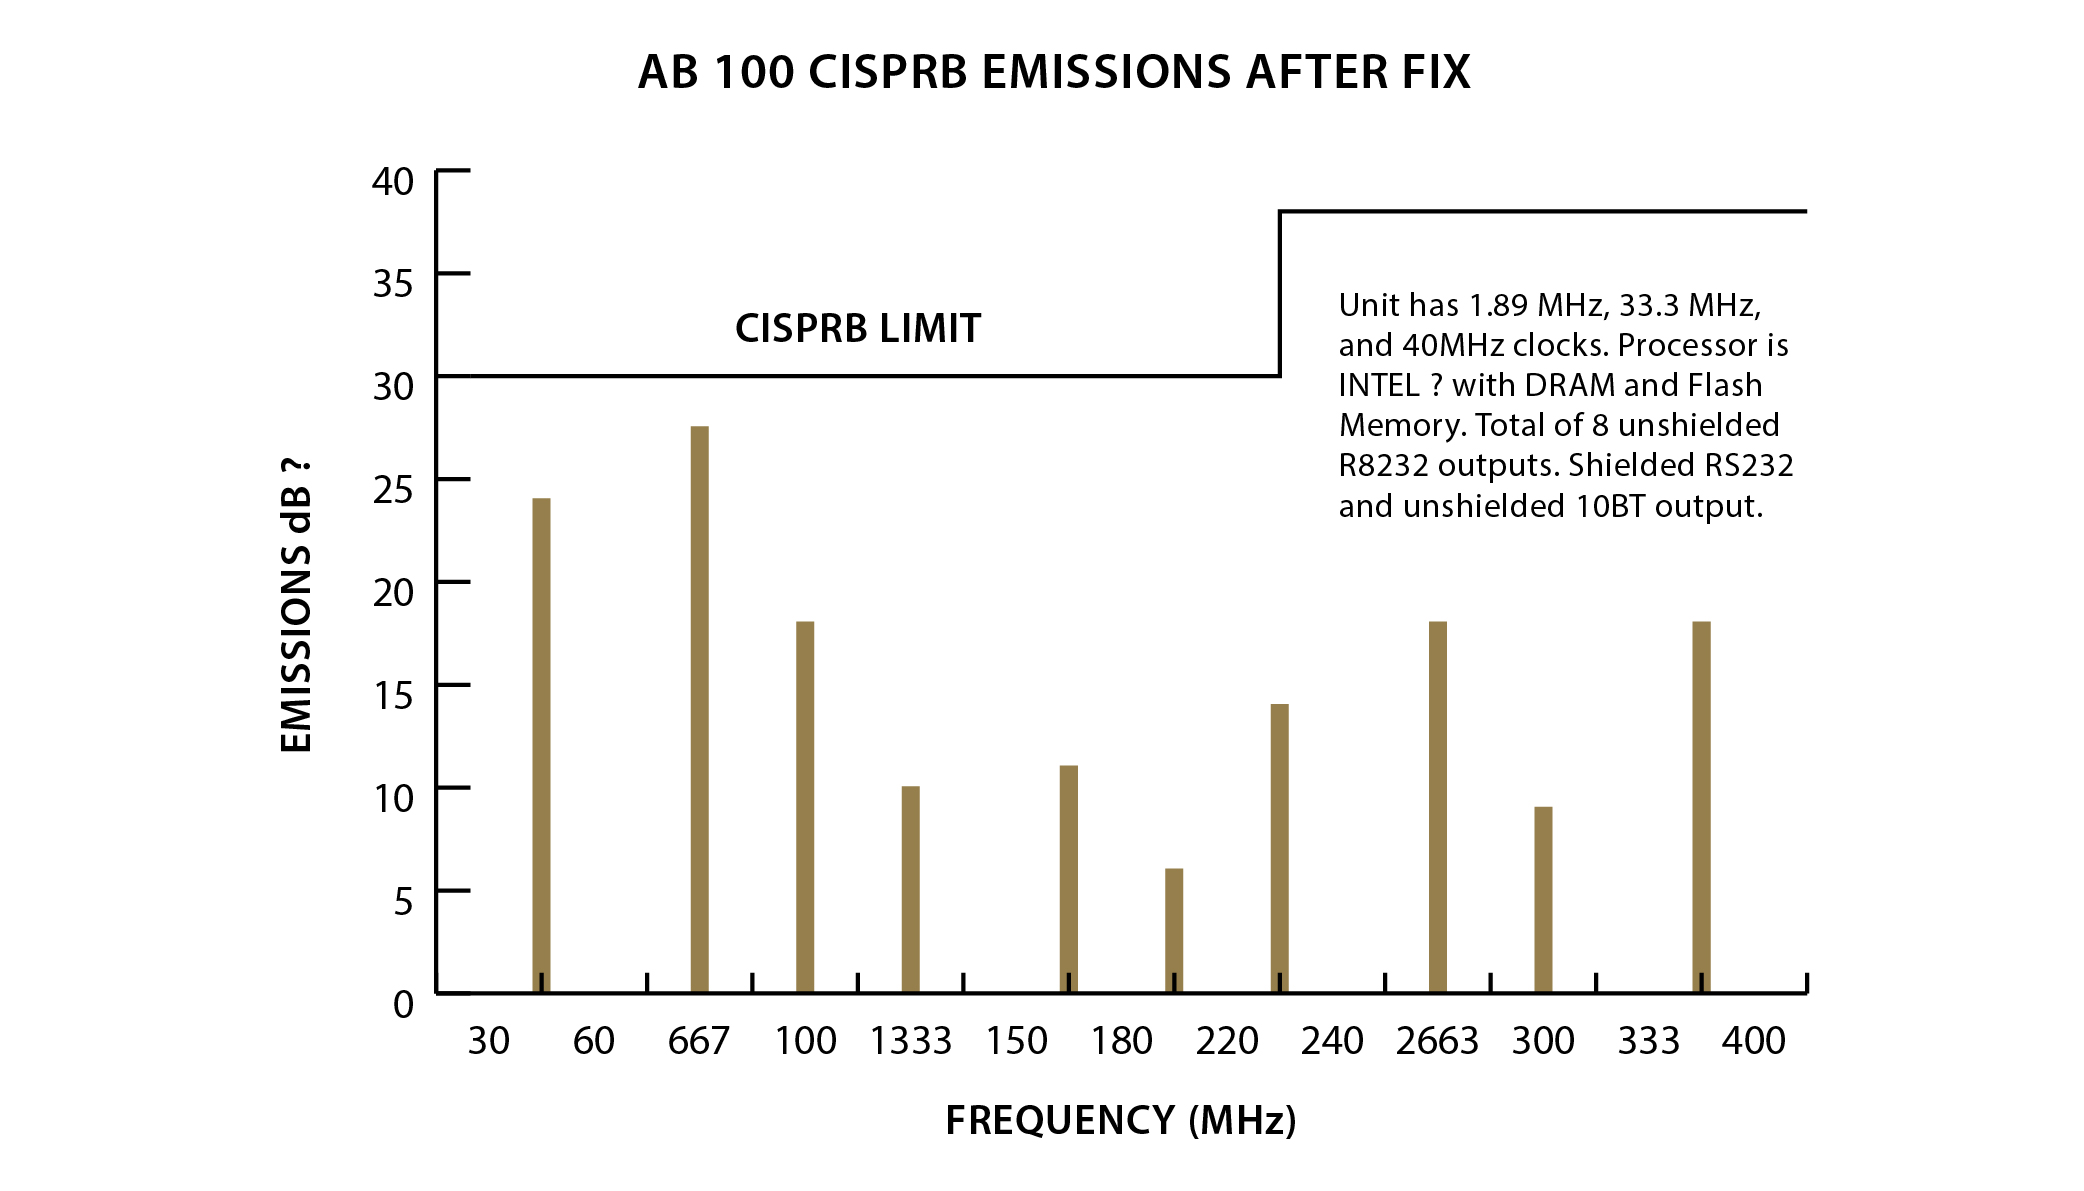 AB1000 CISPRB Emissions shown in dB as a function frequency after adding a plane capacitor to the PCB